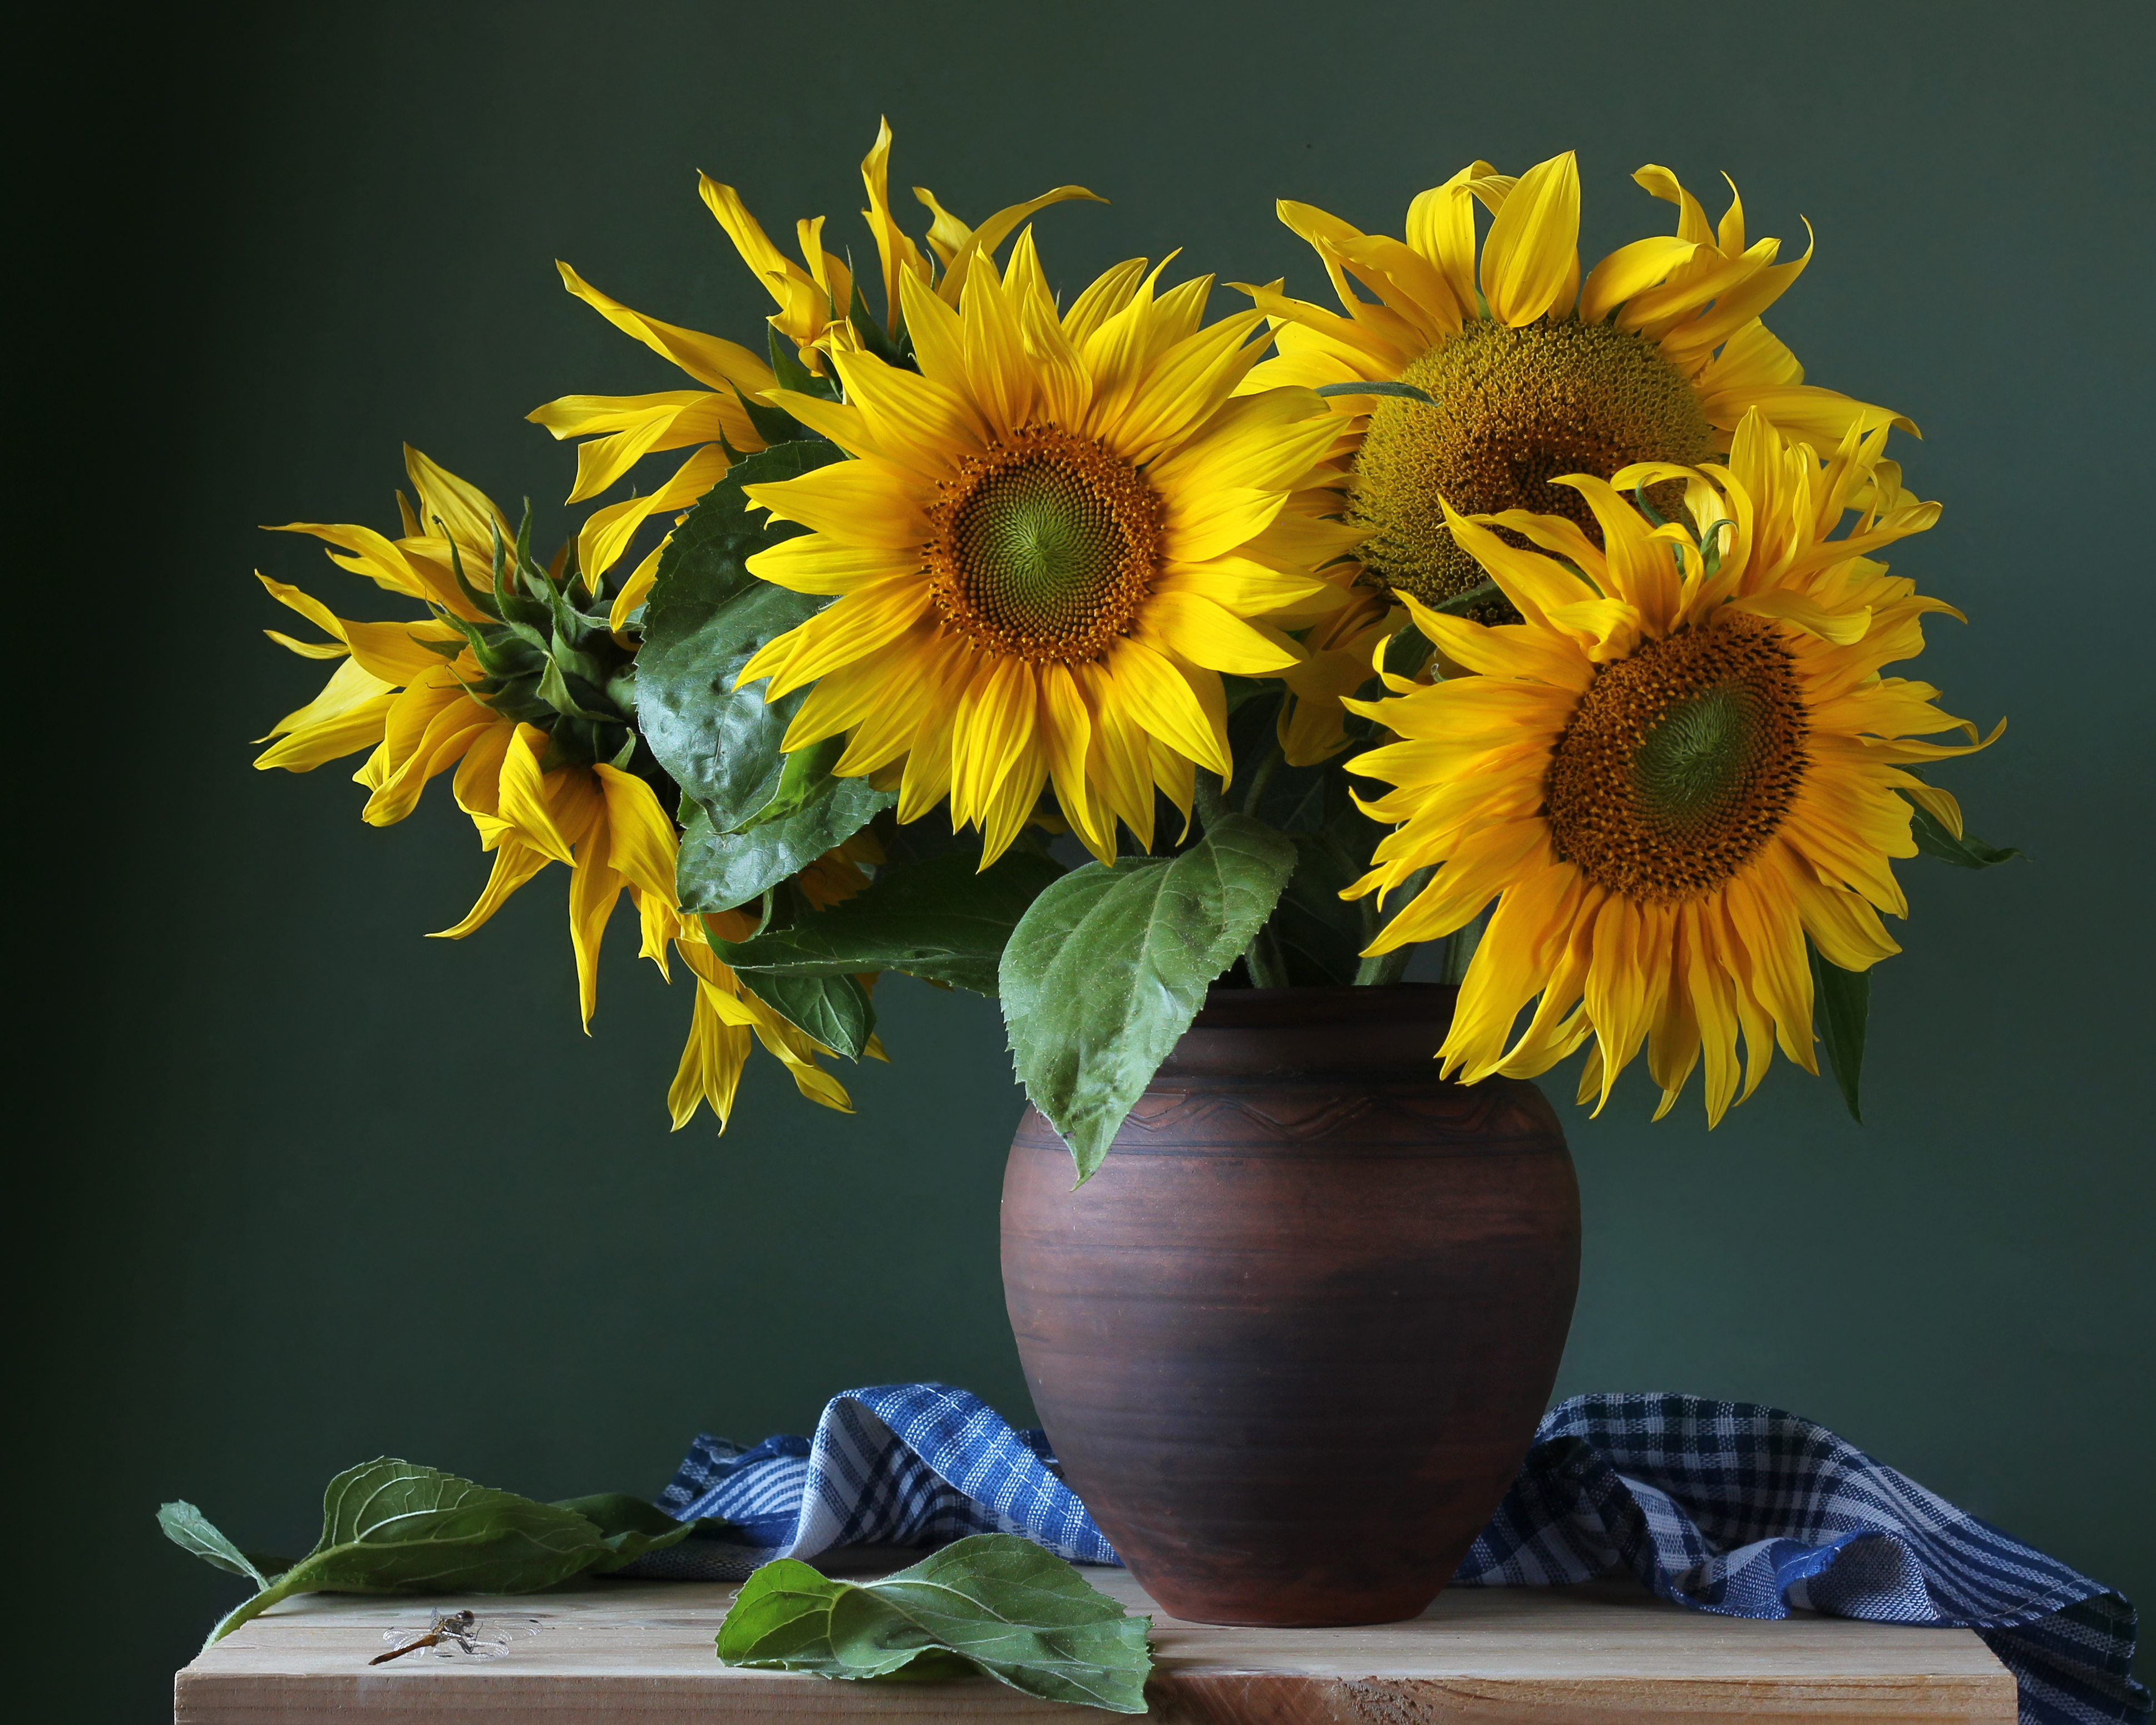 How to Cut Sunflowers to Put in a Vase | Home Guides | SF Gate Pre Flower Vase Craft on flower ball crafts, flower seed crafts, beaded flower crafts, flower garden crafts, flower pen crafts, tiles crafts, flower boxes crafts, flower jar crafts, flower vases for weddings, flower christmas ornament crafts, flower house crafts, flower valentine crafts, ice cream bowl crafts, silk flower crafts, small flowers for crafts, flower bed crafts, dried flower crafts, artificial flower crafts, box crafts, flower mosaic crafts,